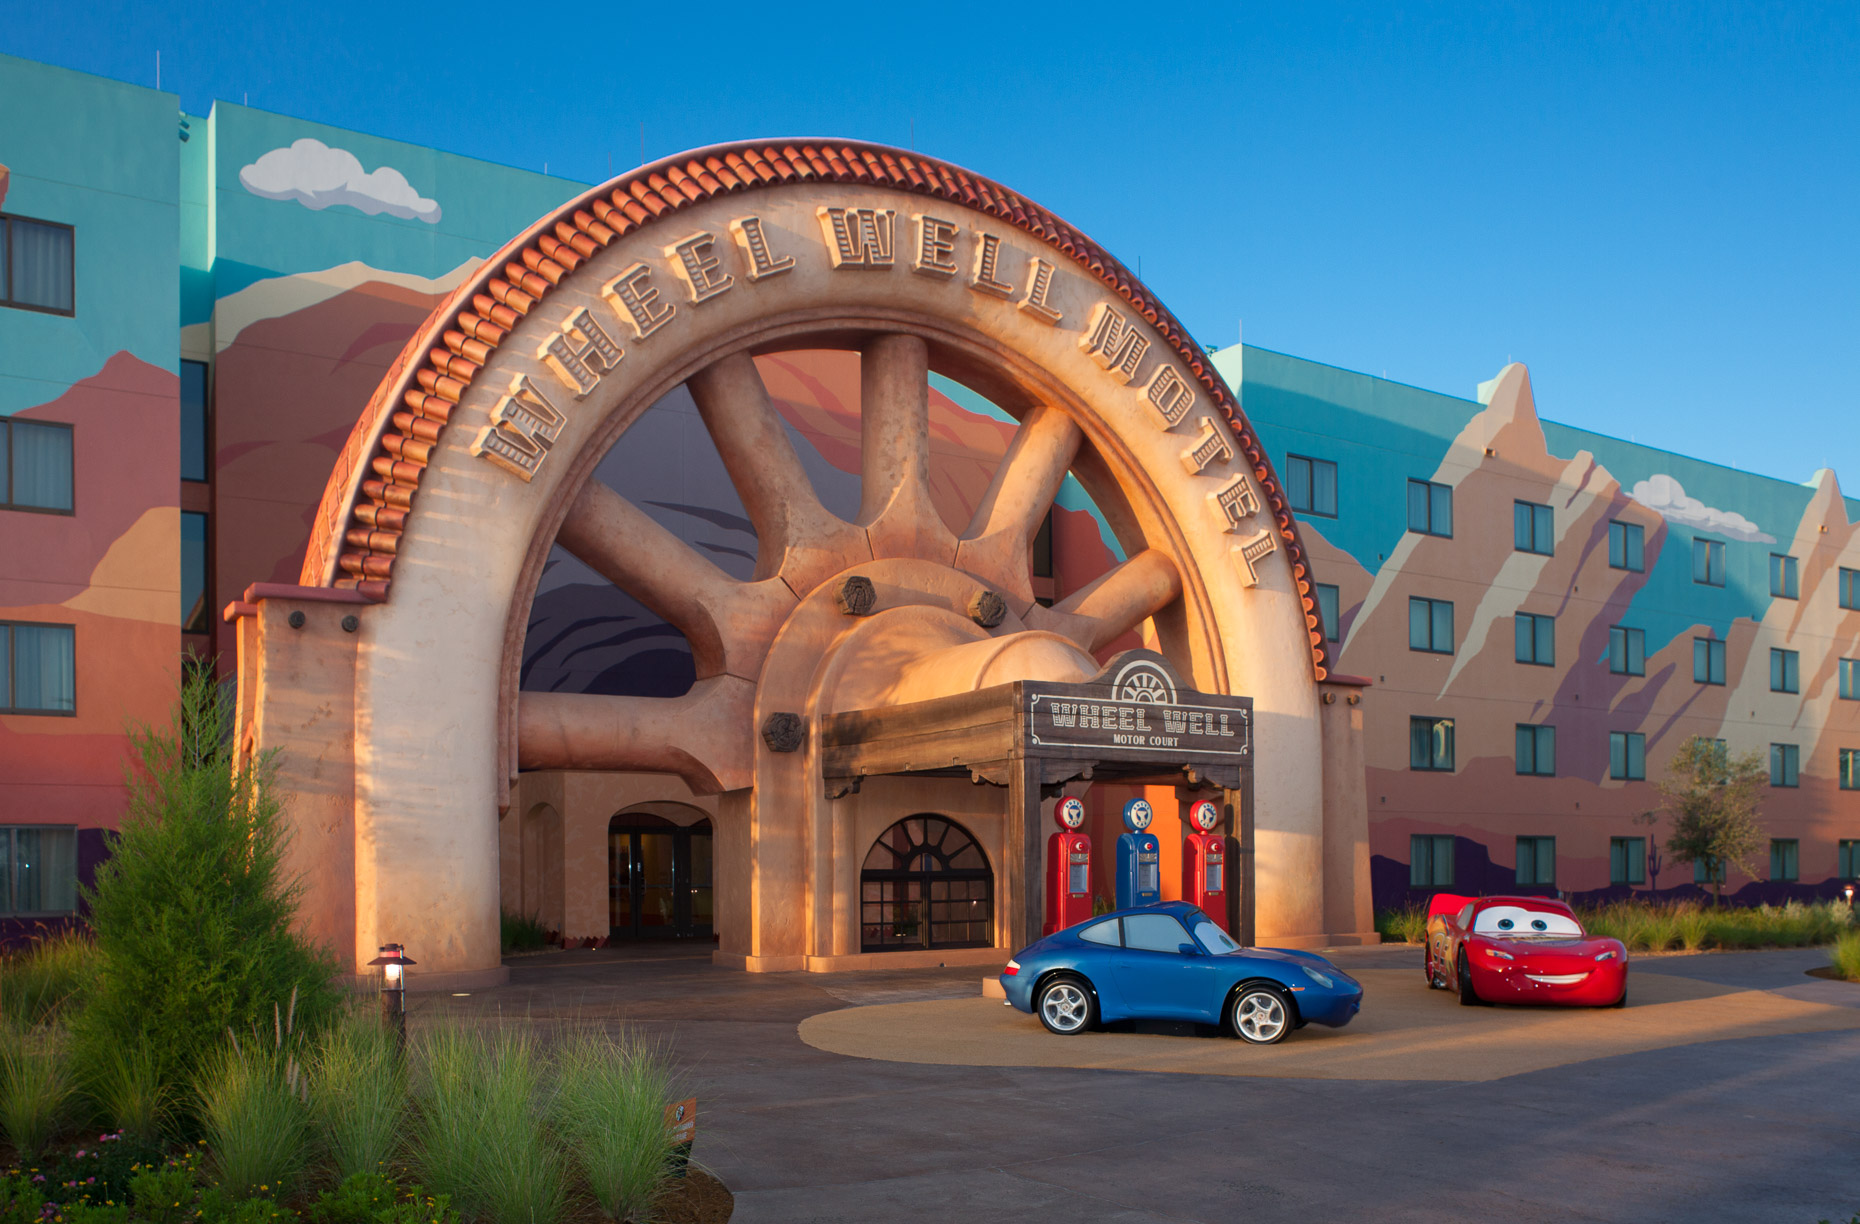 Disney Art of Animation Resort - Mark Borosch Photography - Orlando, FL